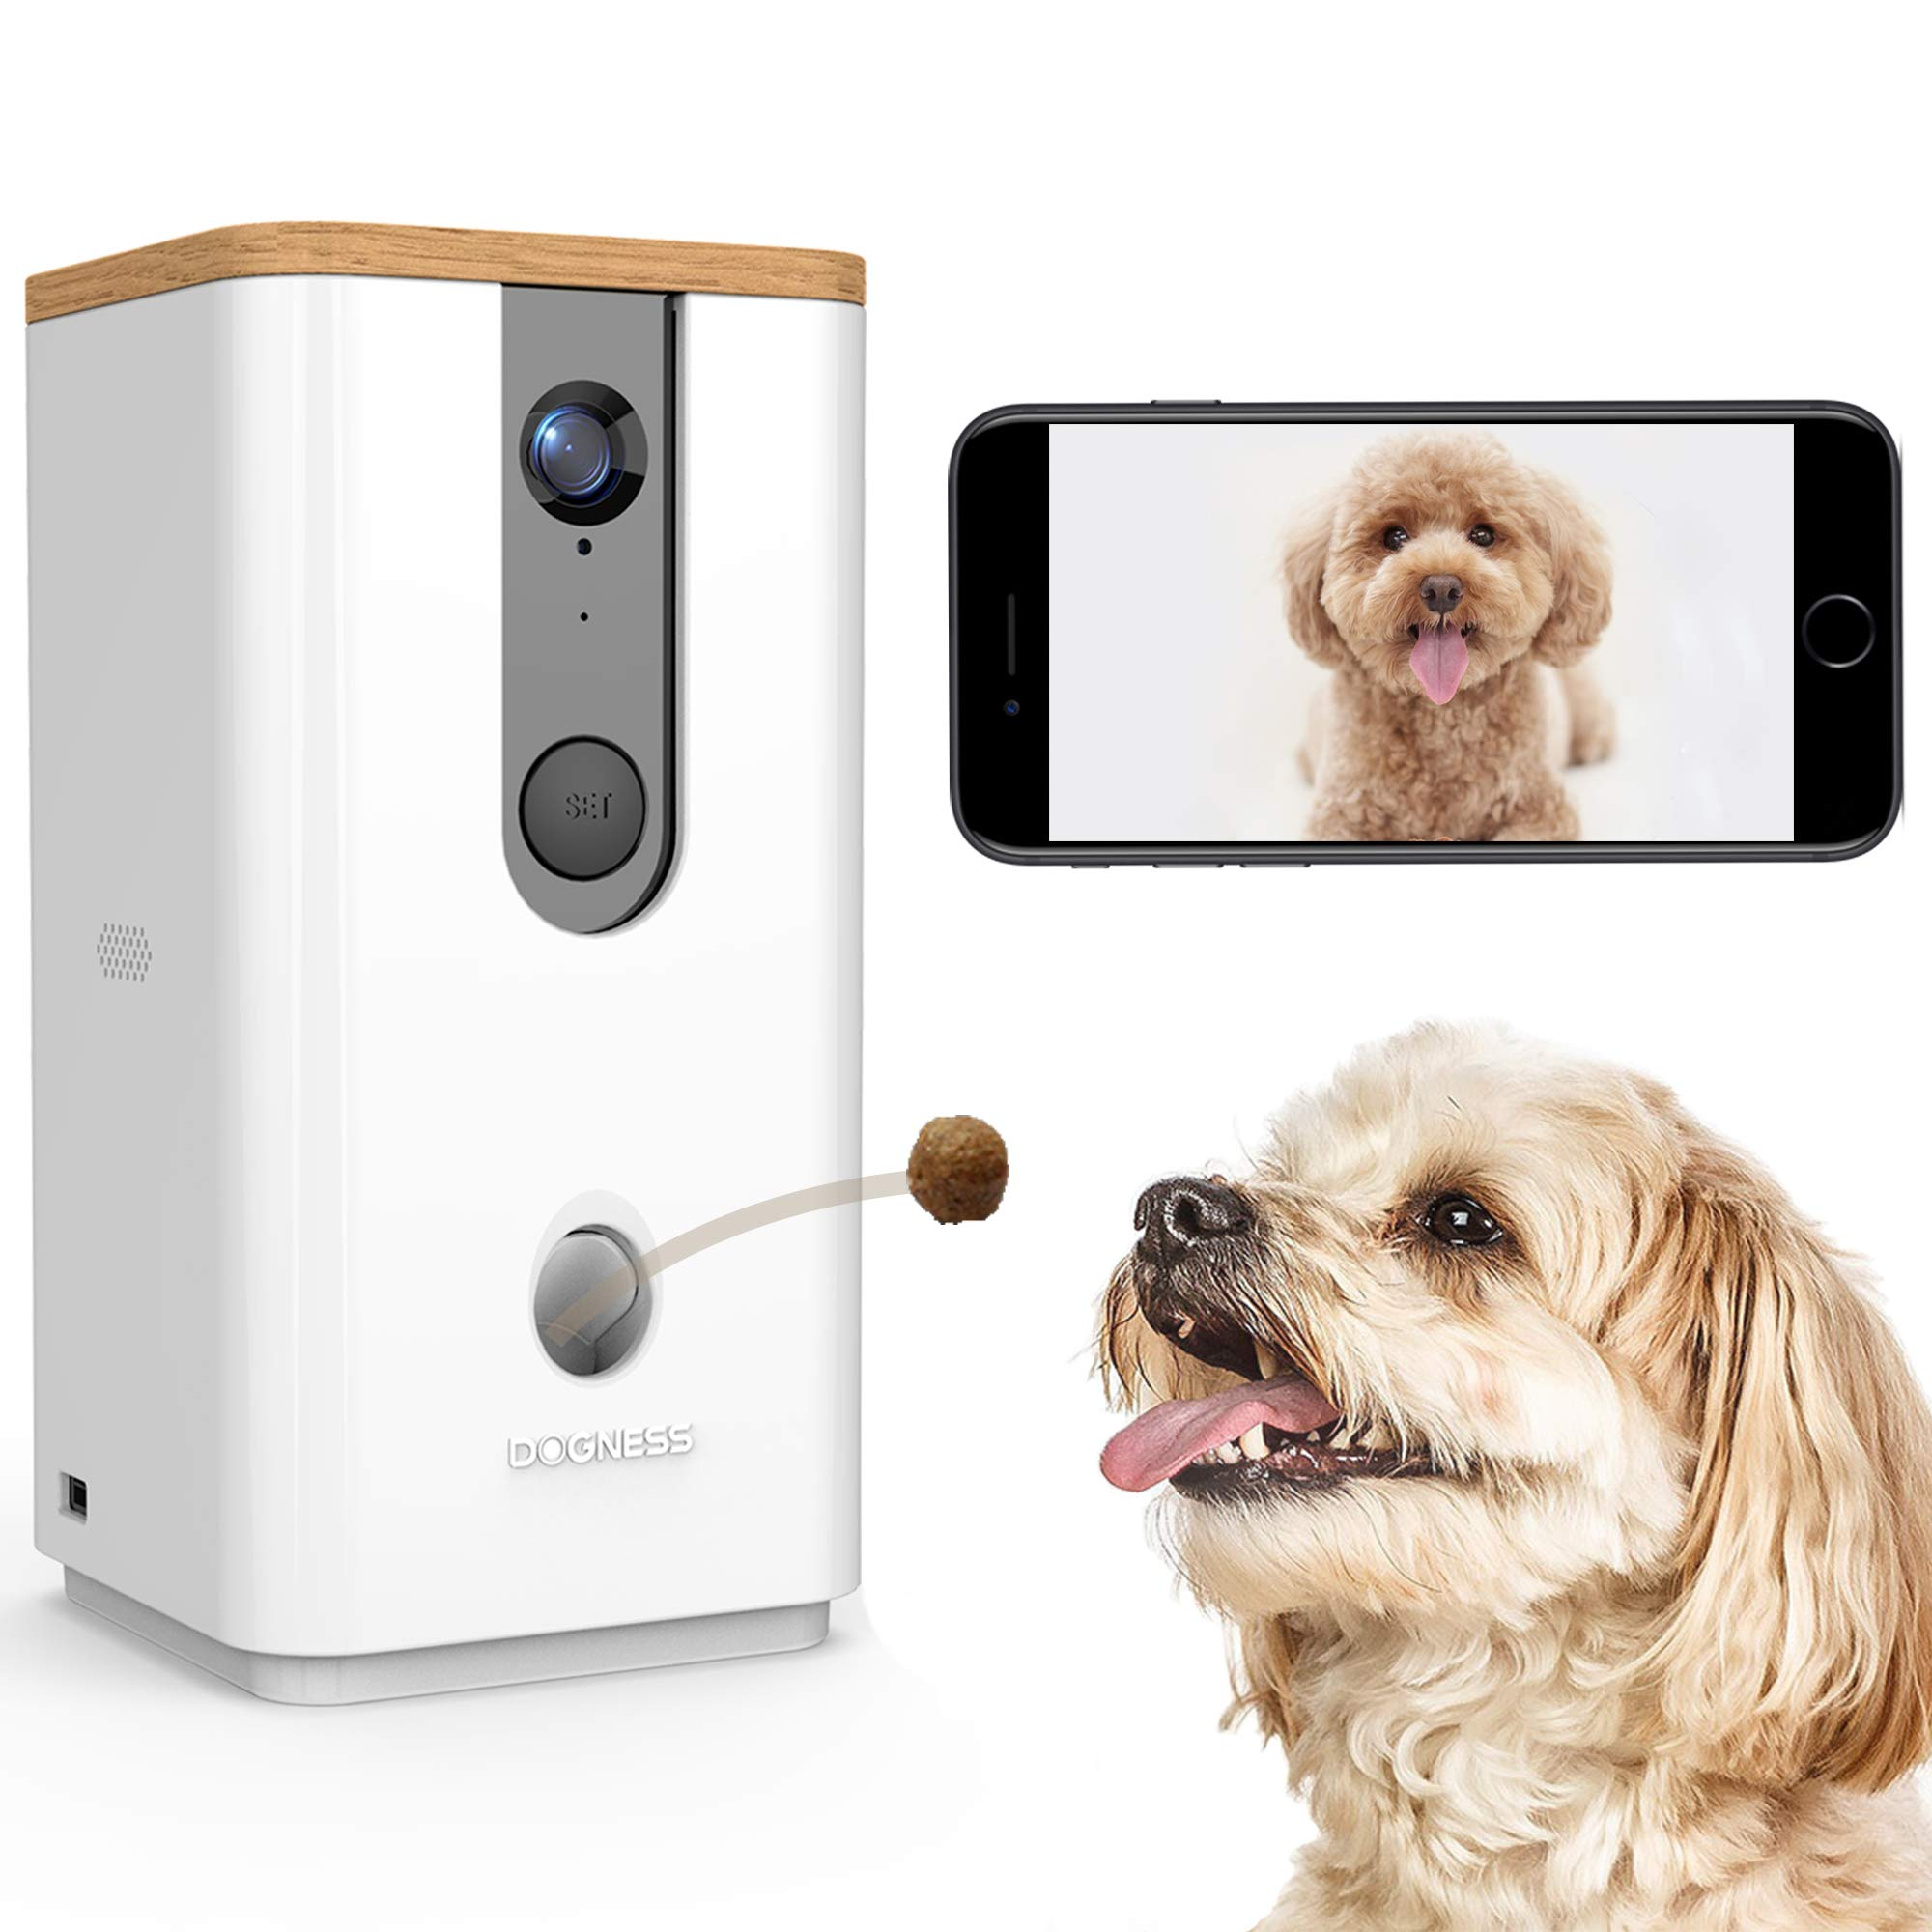 DOGNESS Dog Camera Treat Dispenser,HD Video WiFi Pet Camera with 2-Way Audio and Night Vision,Monitor Your Dogs and Cats by DOGNESS